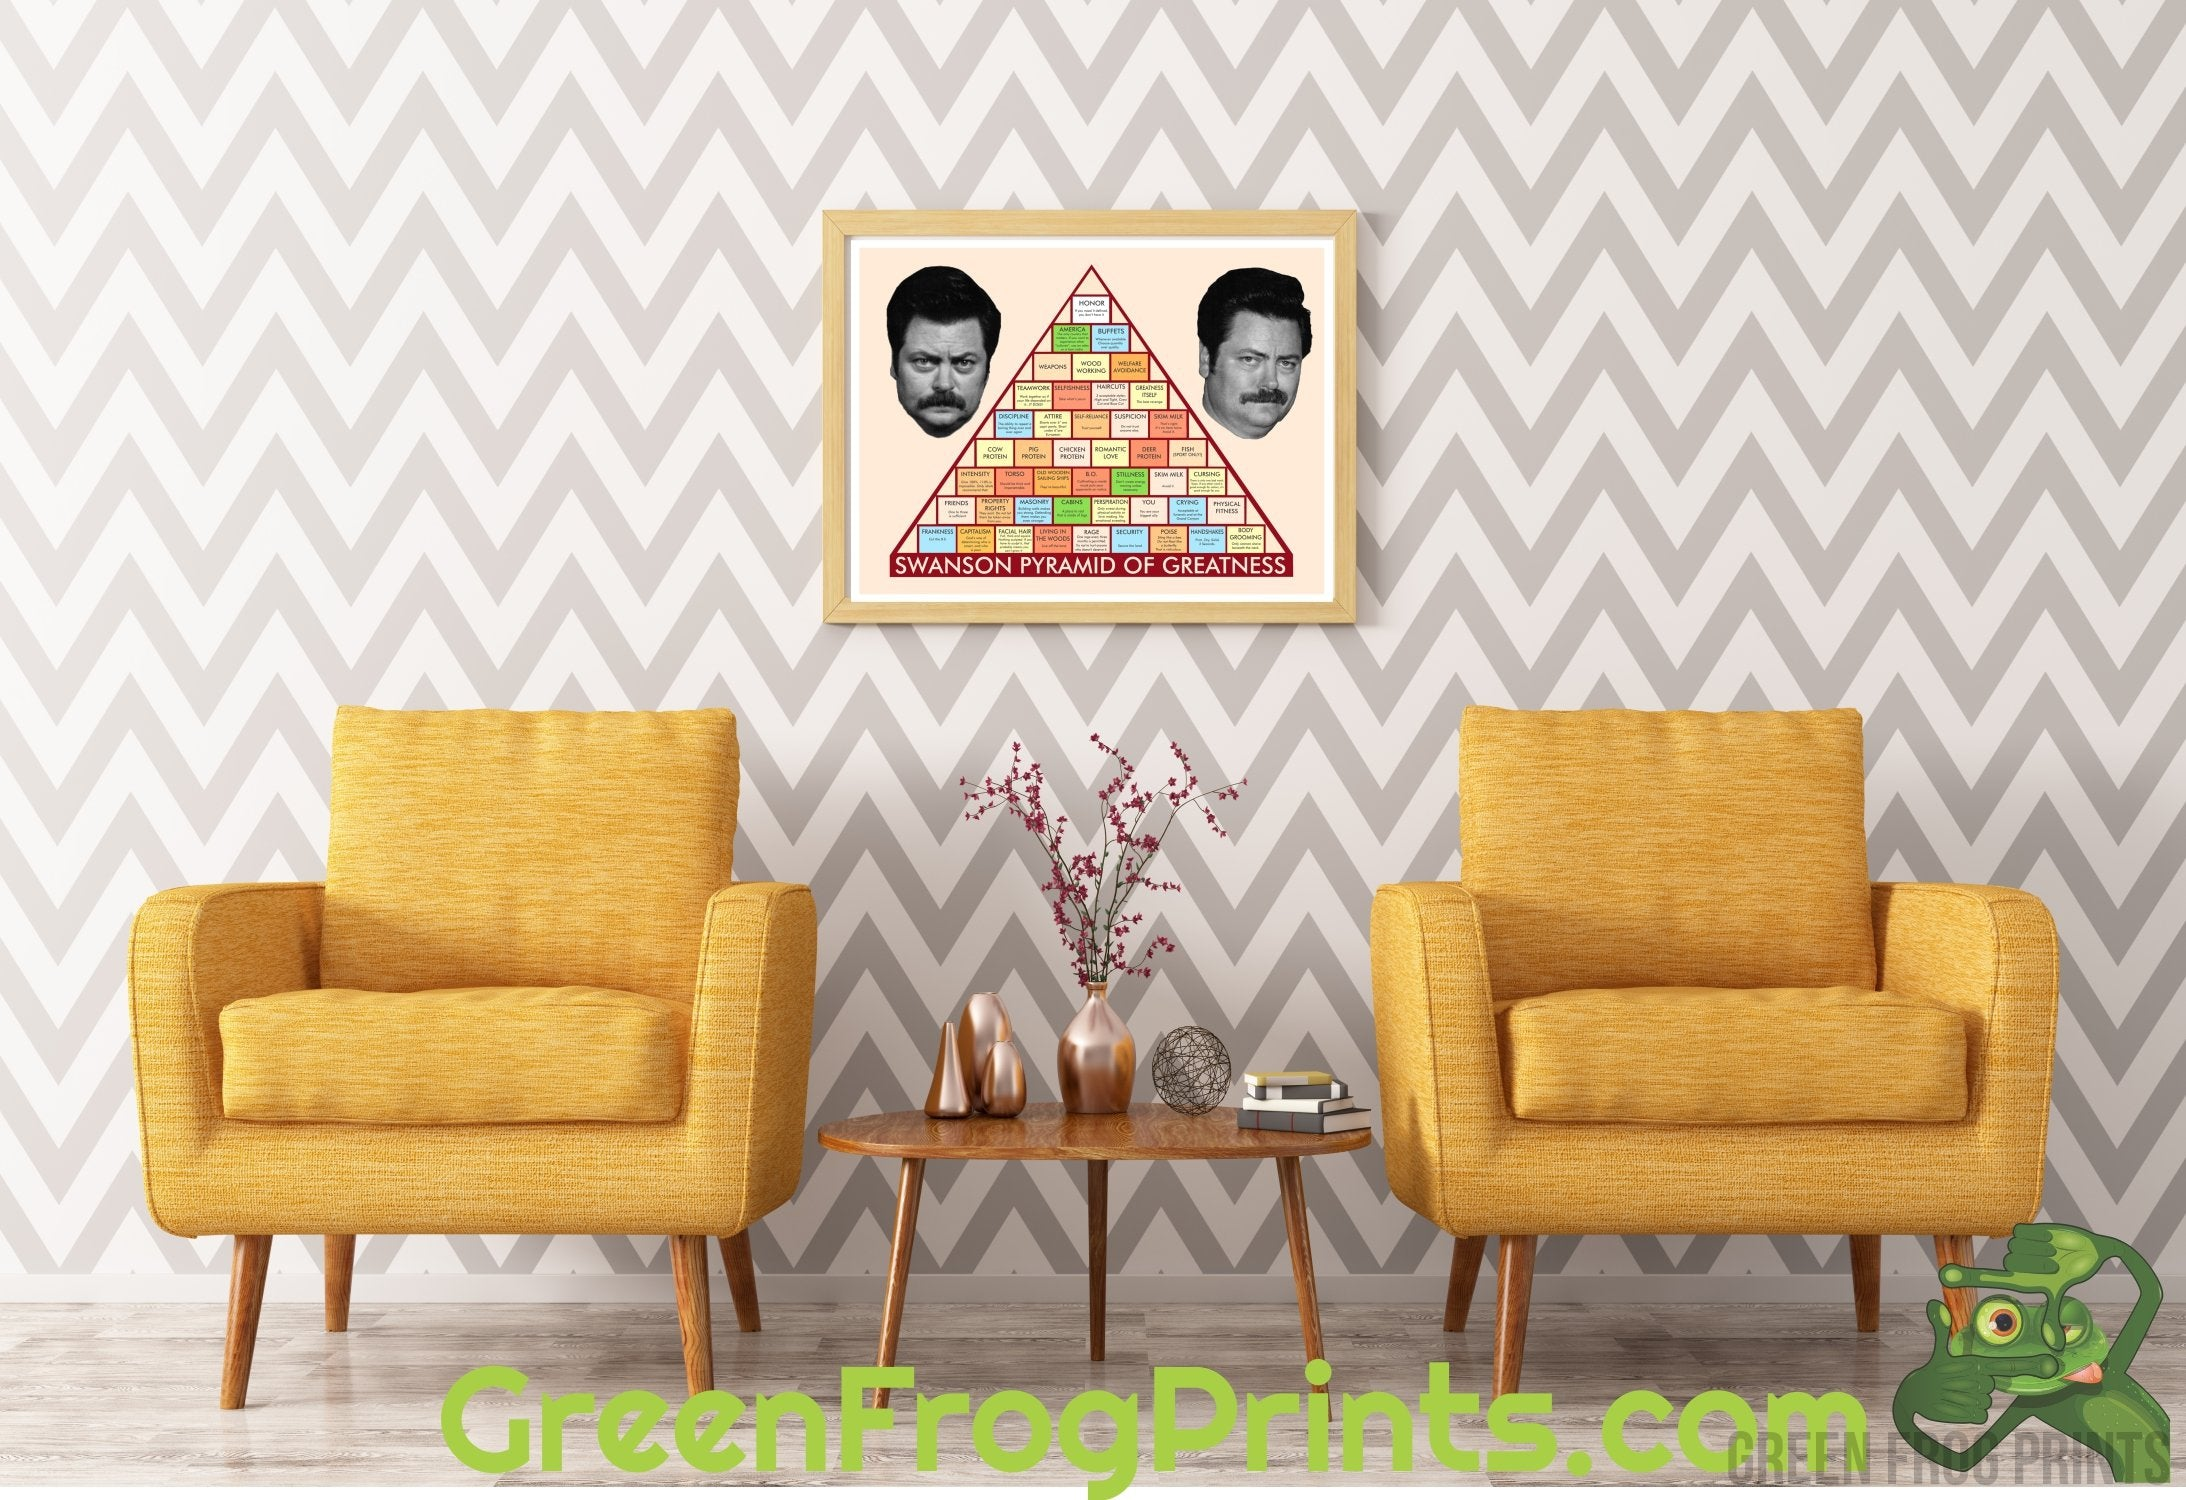 photo relating to Ron Swanson Pyramid of Greatness Printable Version referred to as Notable Tv set Clearly show Poster Prints Wall Decor Inexperienced